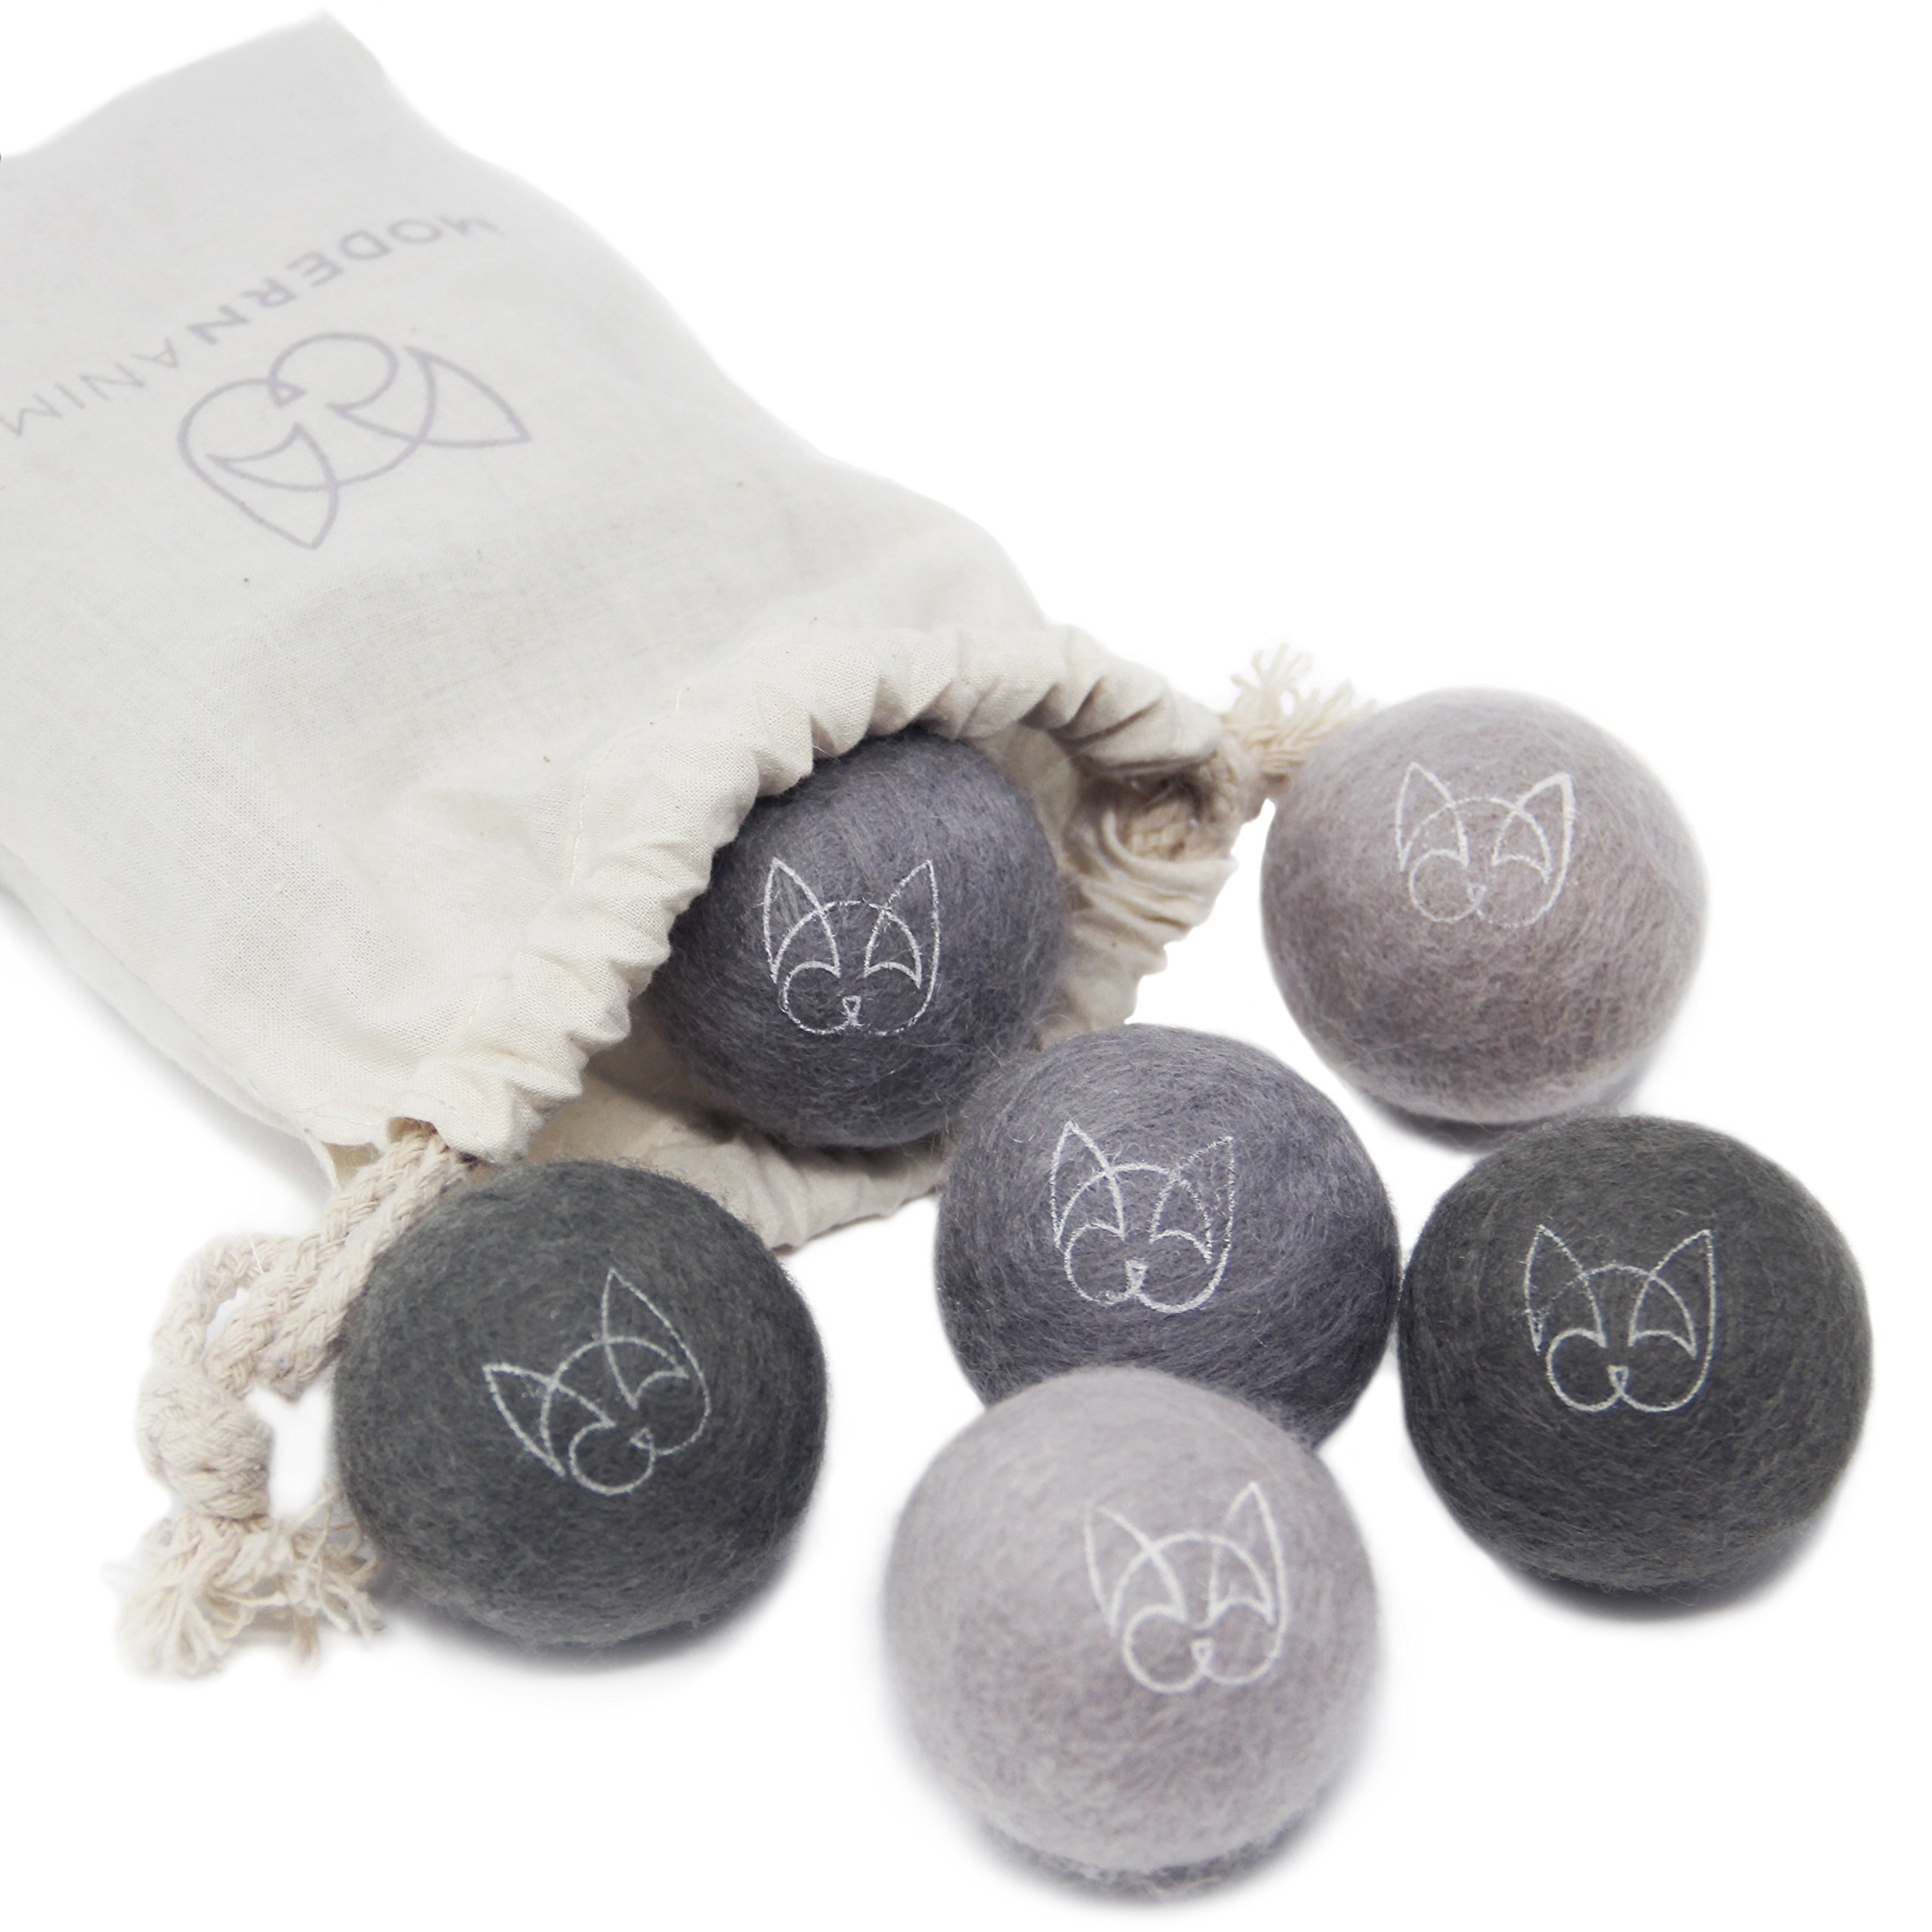 Modern Animal Set of 6 Wool Felt Ball Toys with Jingle Bell for Cats and Small Pets. Handmade, Natural, Eco-Friendly, Fun Play Toy